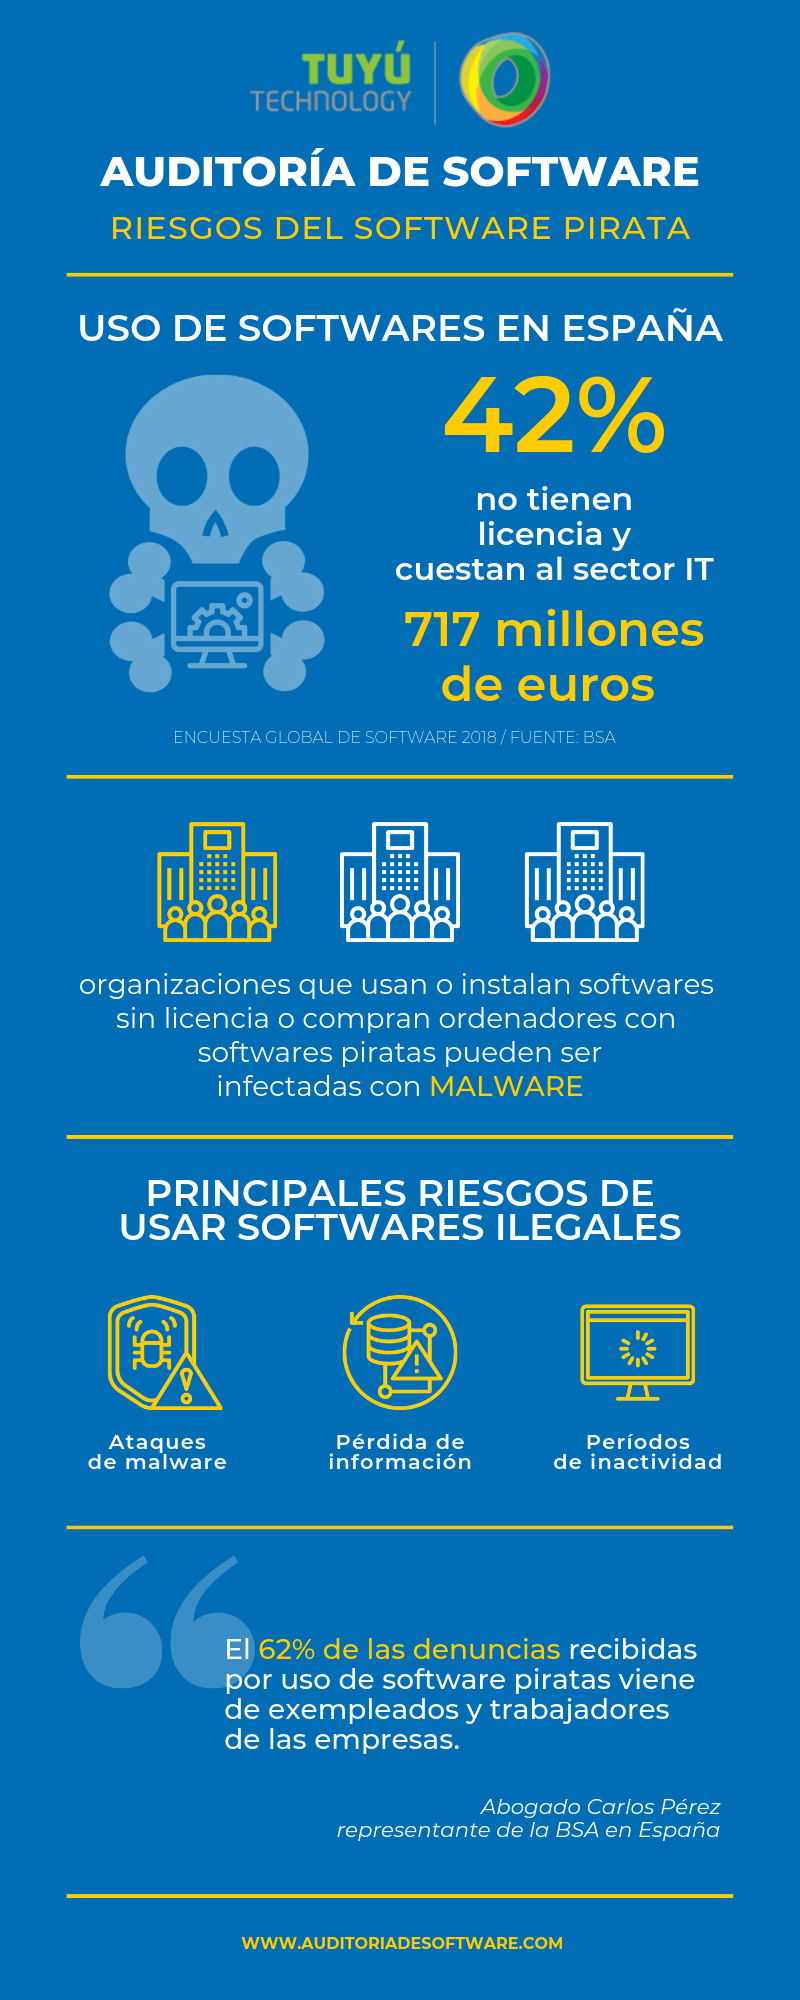 Auditoria de software riesgos malware